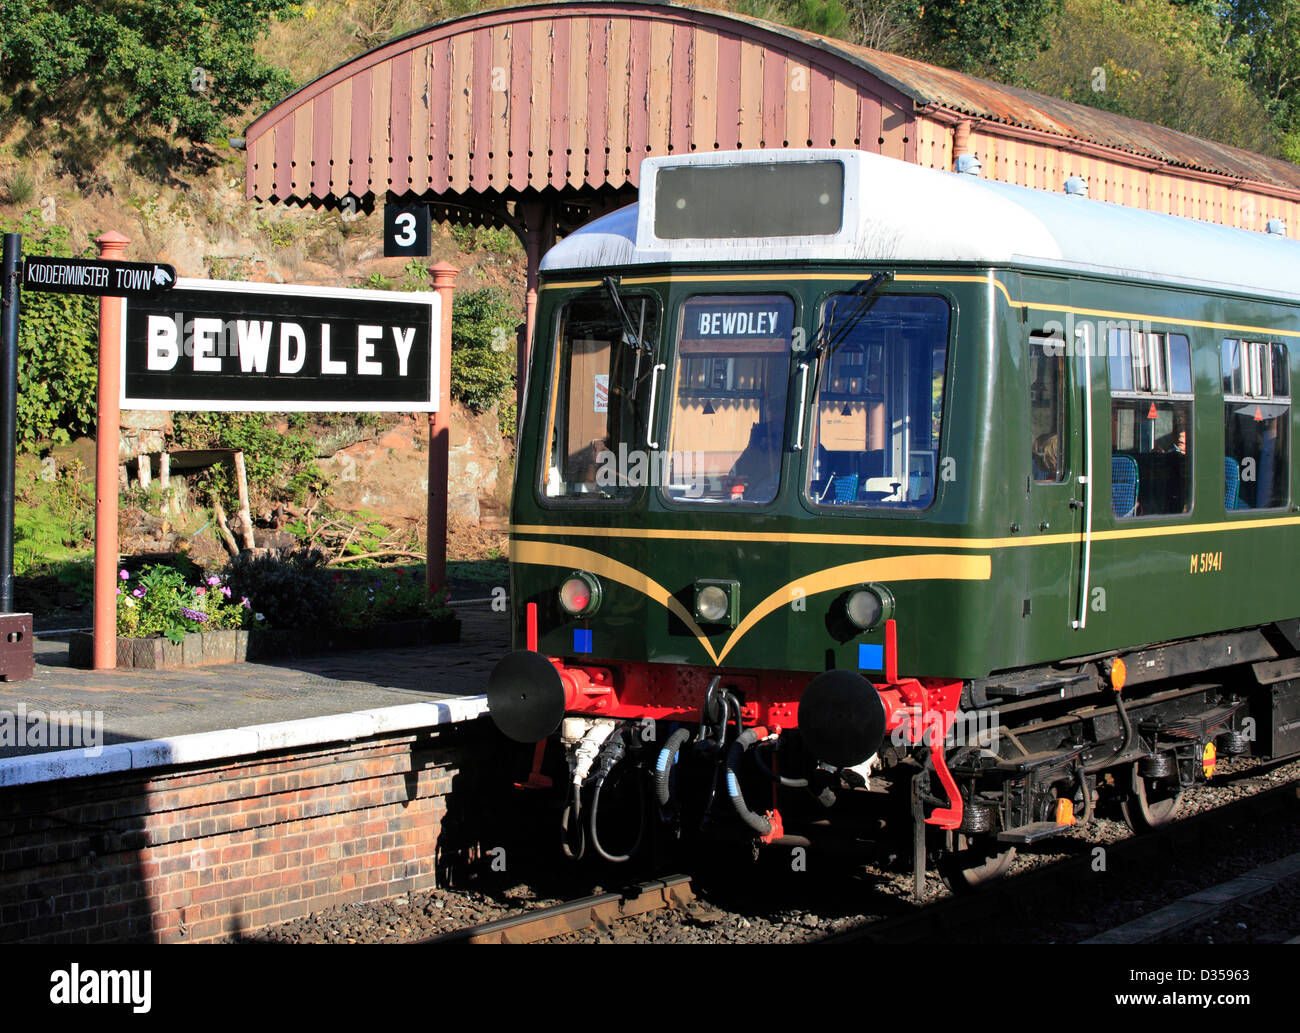 Class 180 M51941 DMU halts at Bewdley Severn Valley Railway Station, Worcestershire, England, Europe - Stock Image